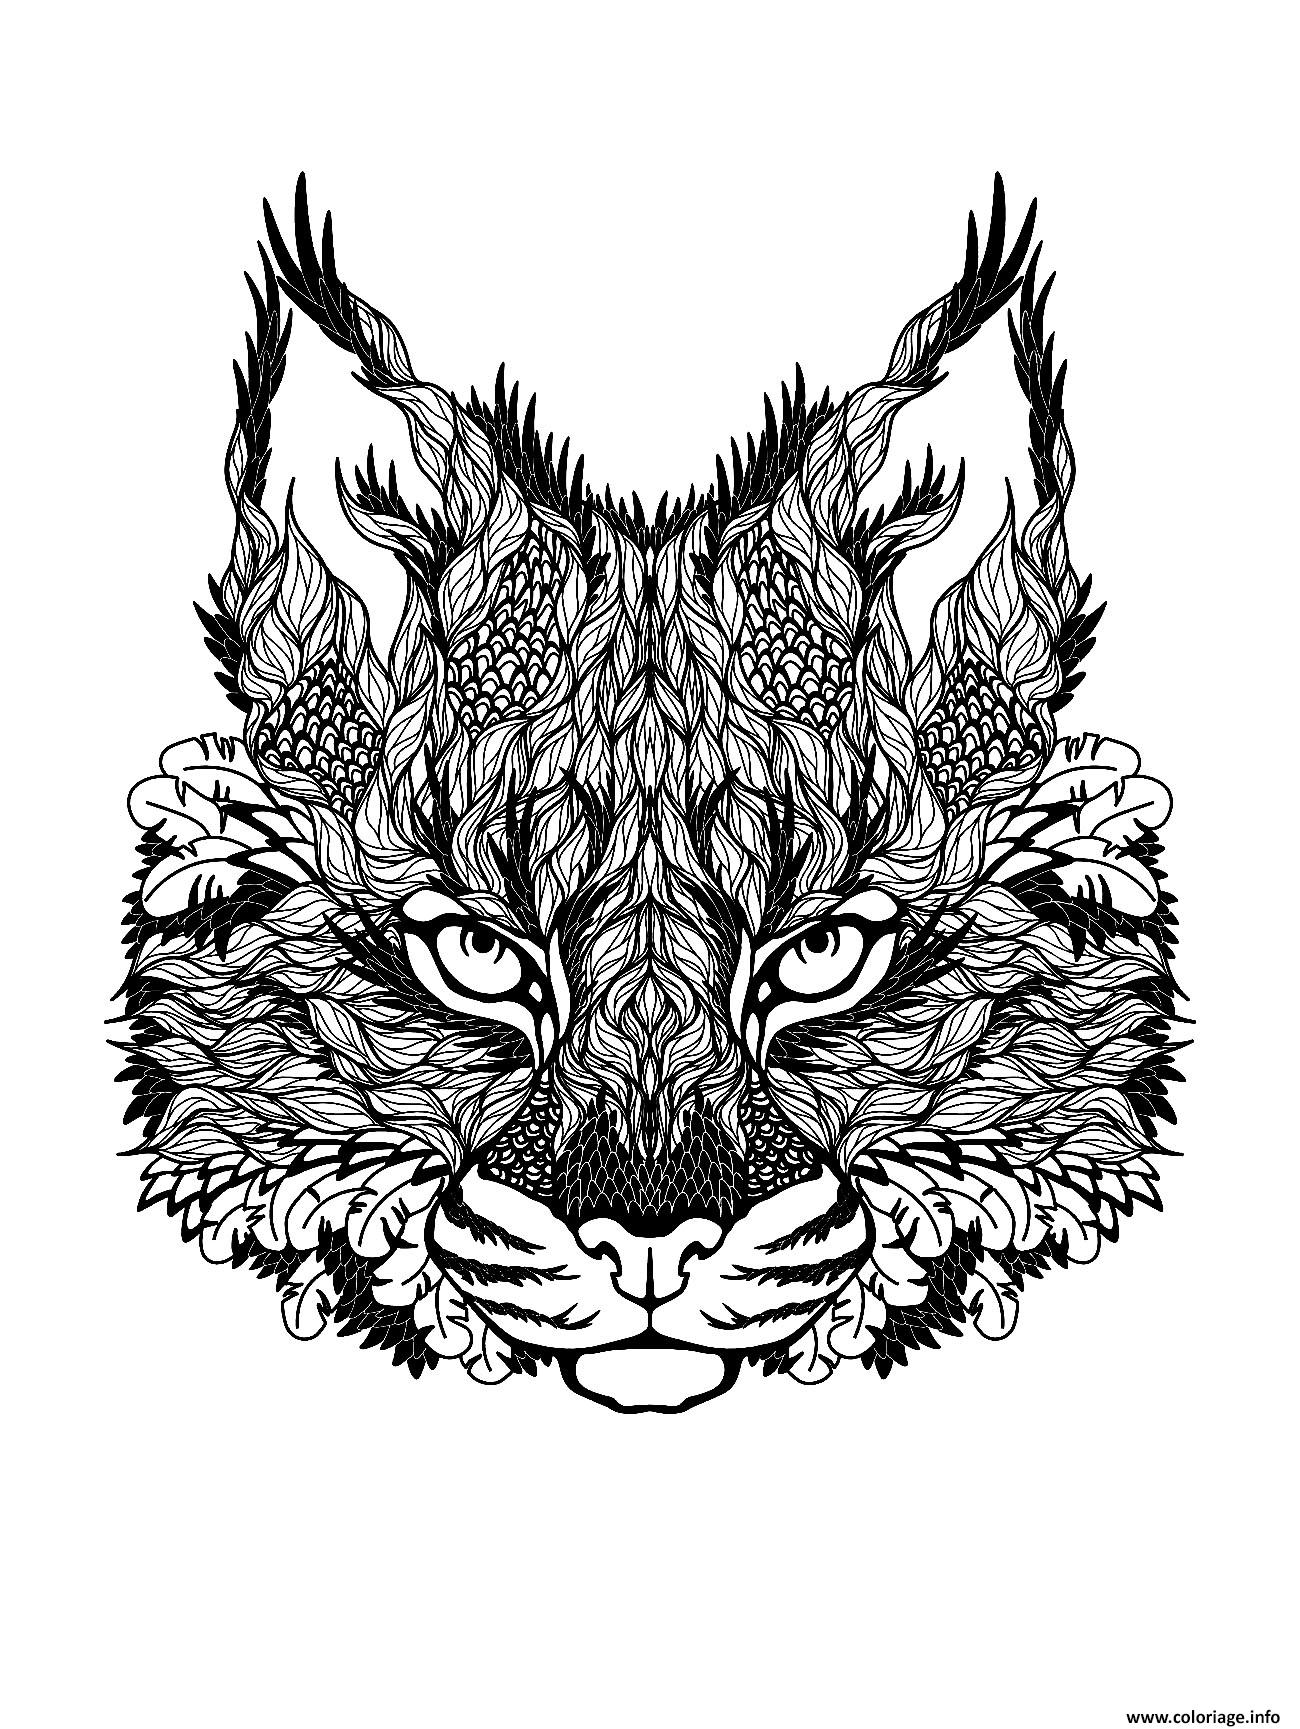 Coloriage dessin difficile adulte loup zen dessin - Chat a colorier adulte ...